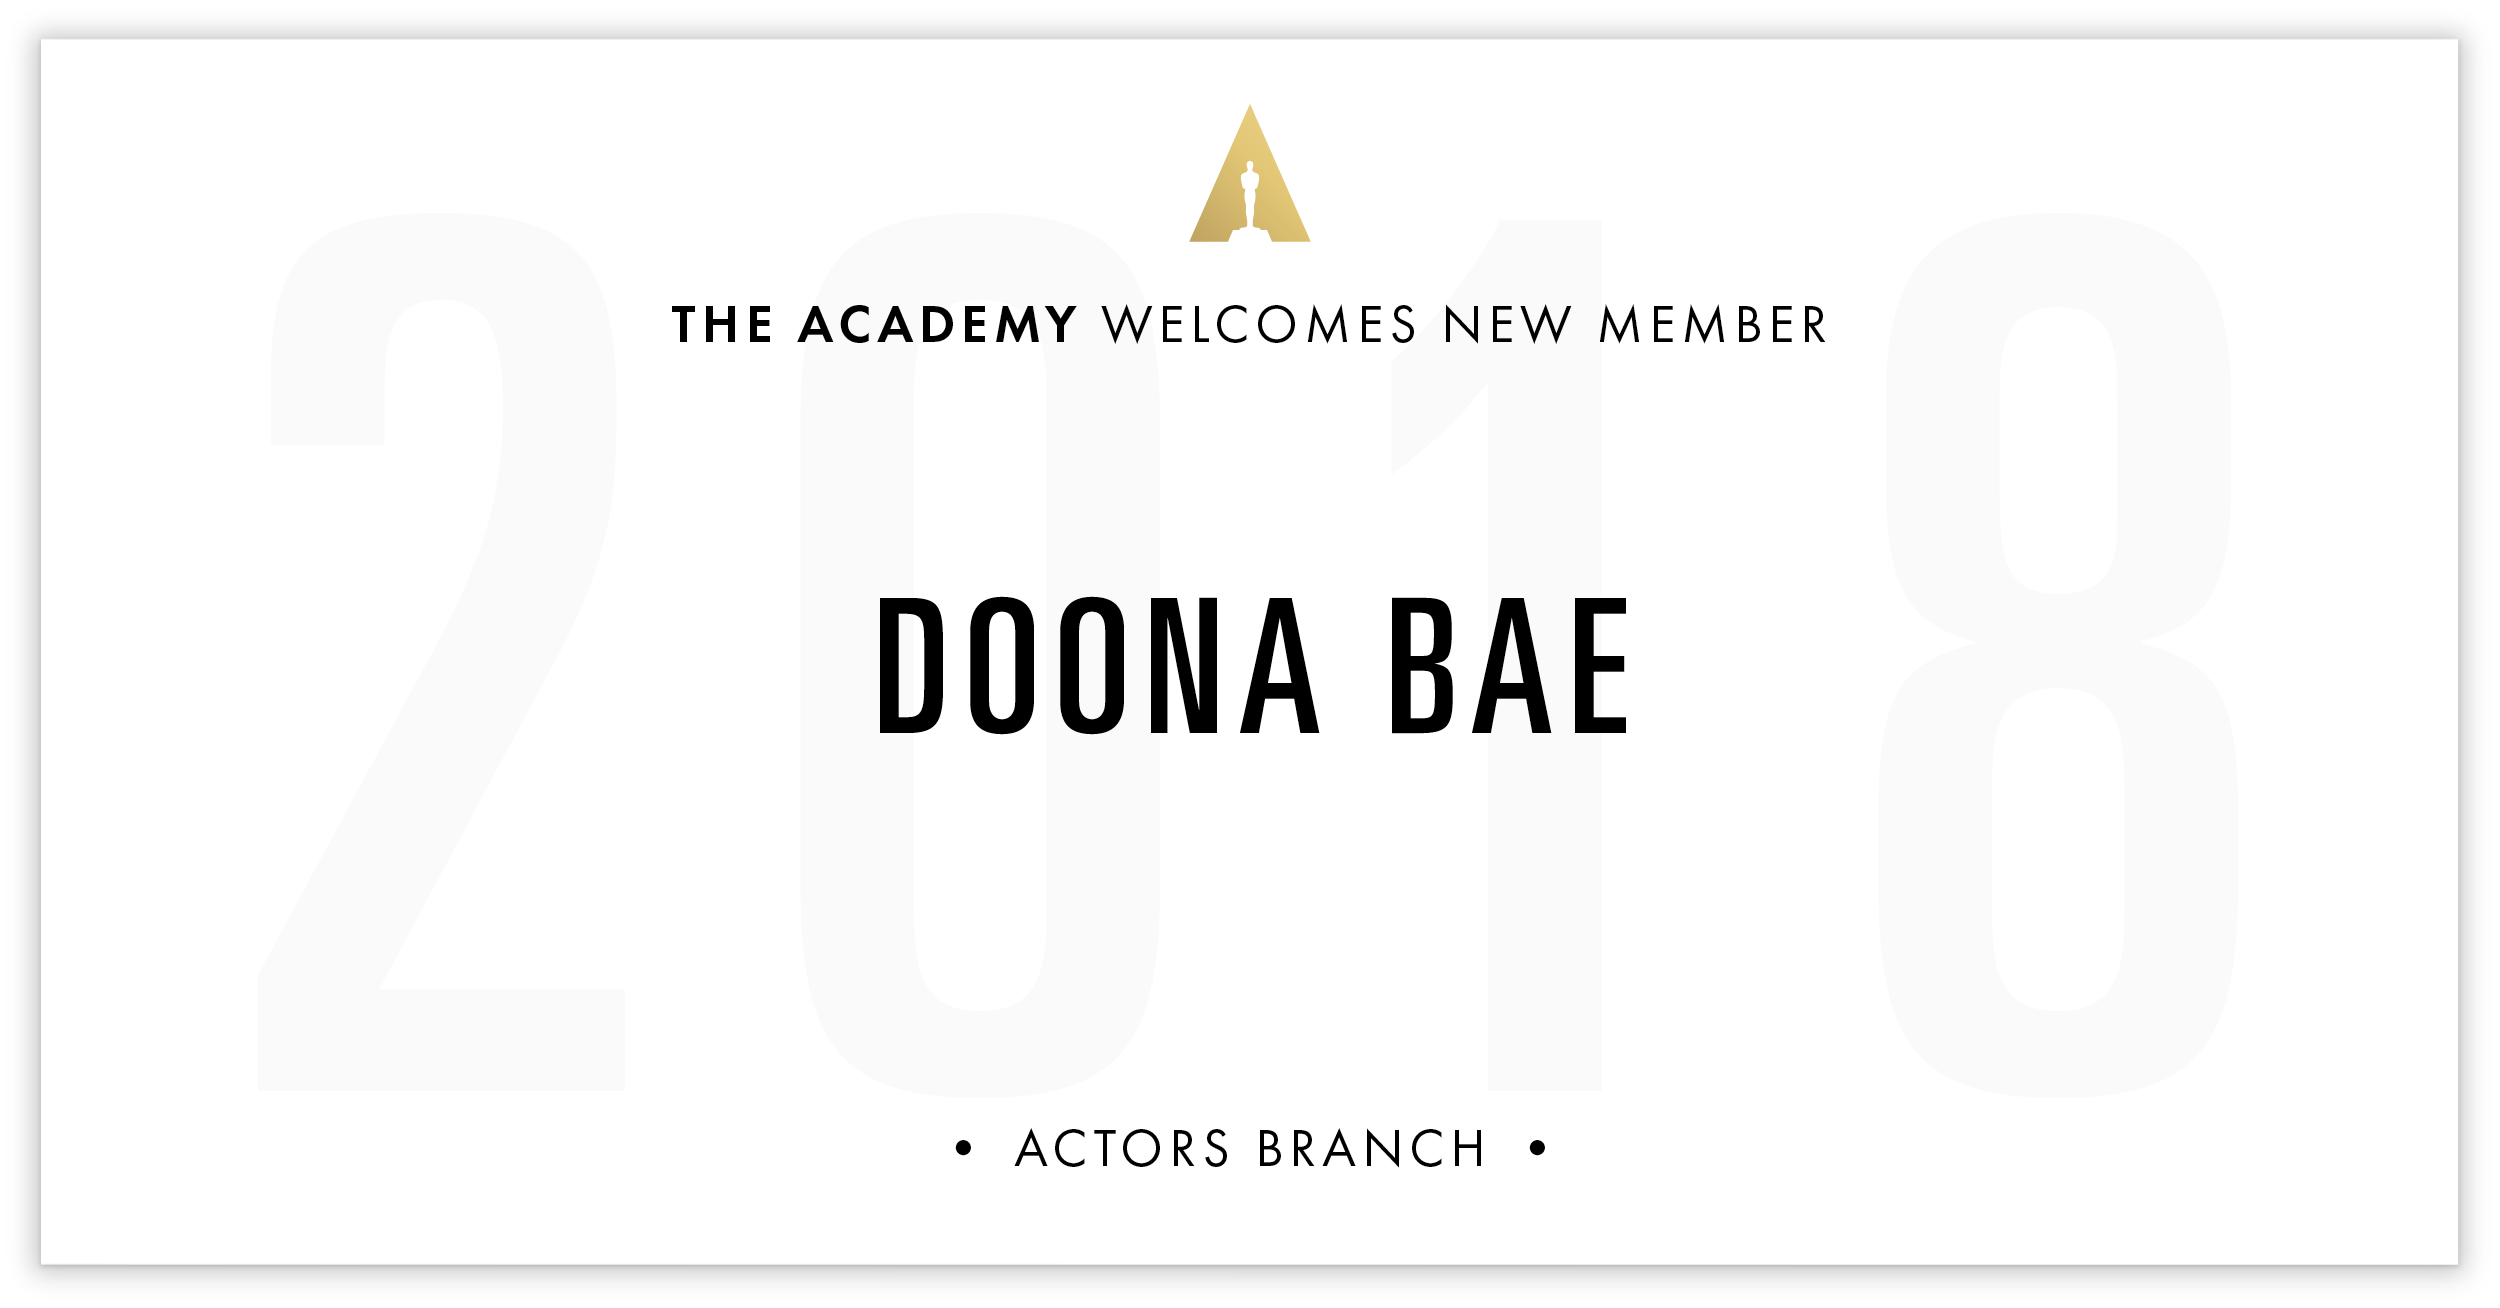 Doona Bae is invited!